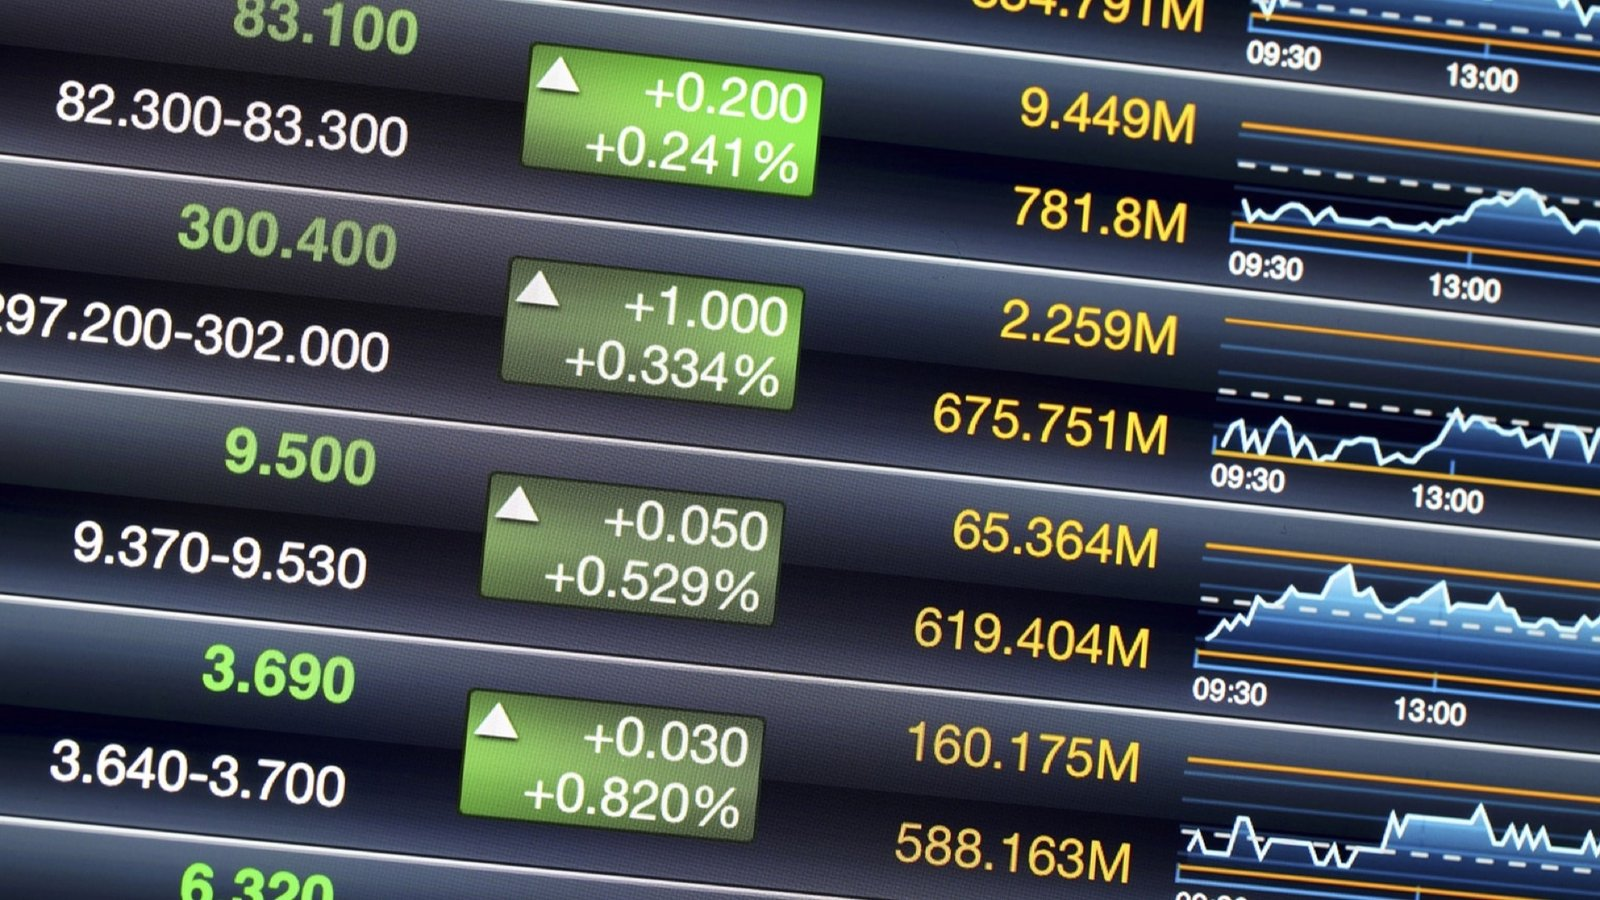 Starting with Stocks